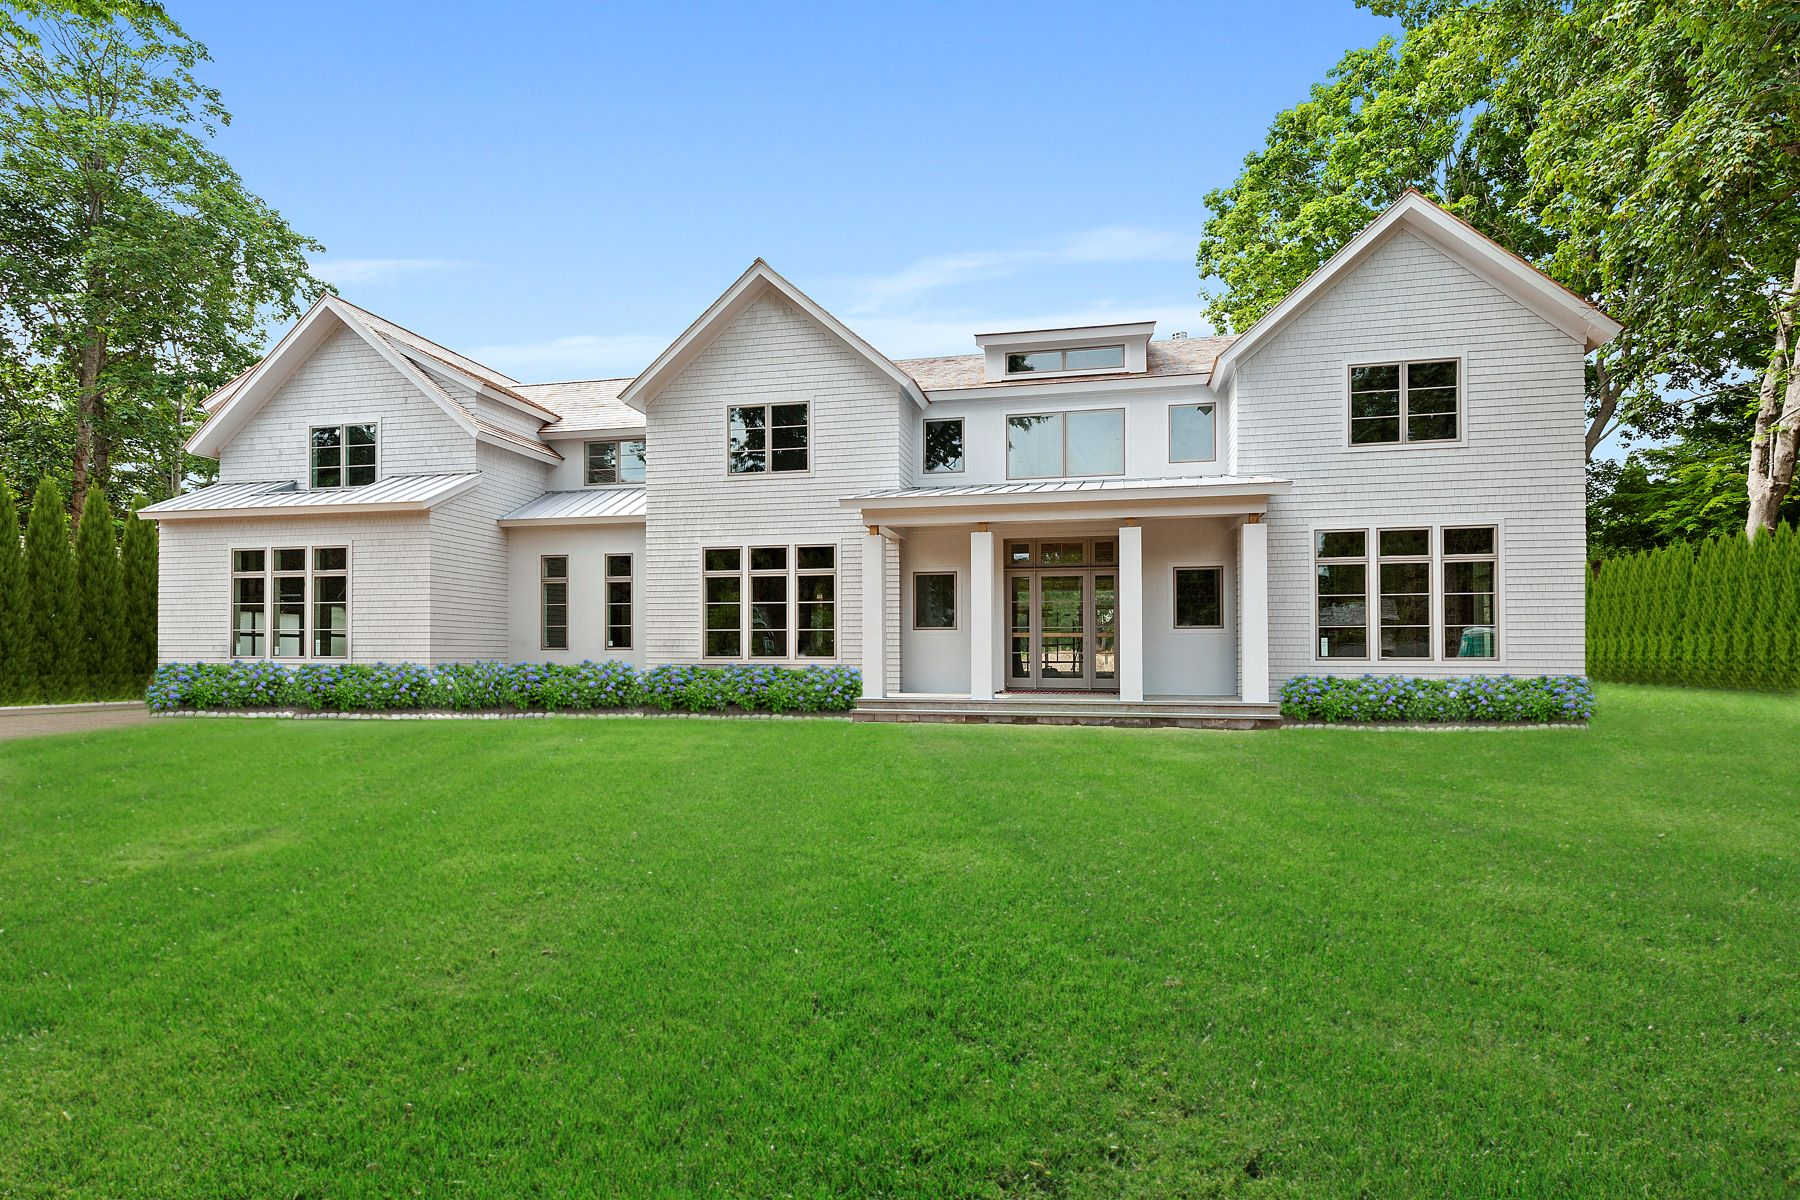 Single Family Homes for Sale at Trophy New Build with Tennis in Village 163 Church Lane Bridgehampton, New York 11932 United States